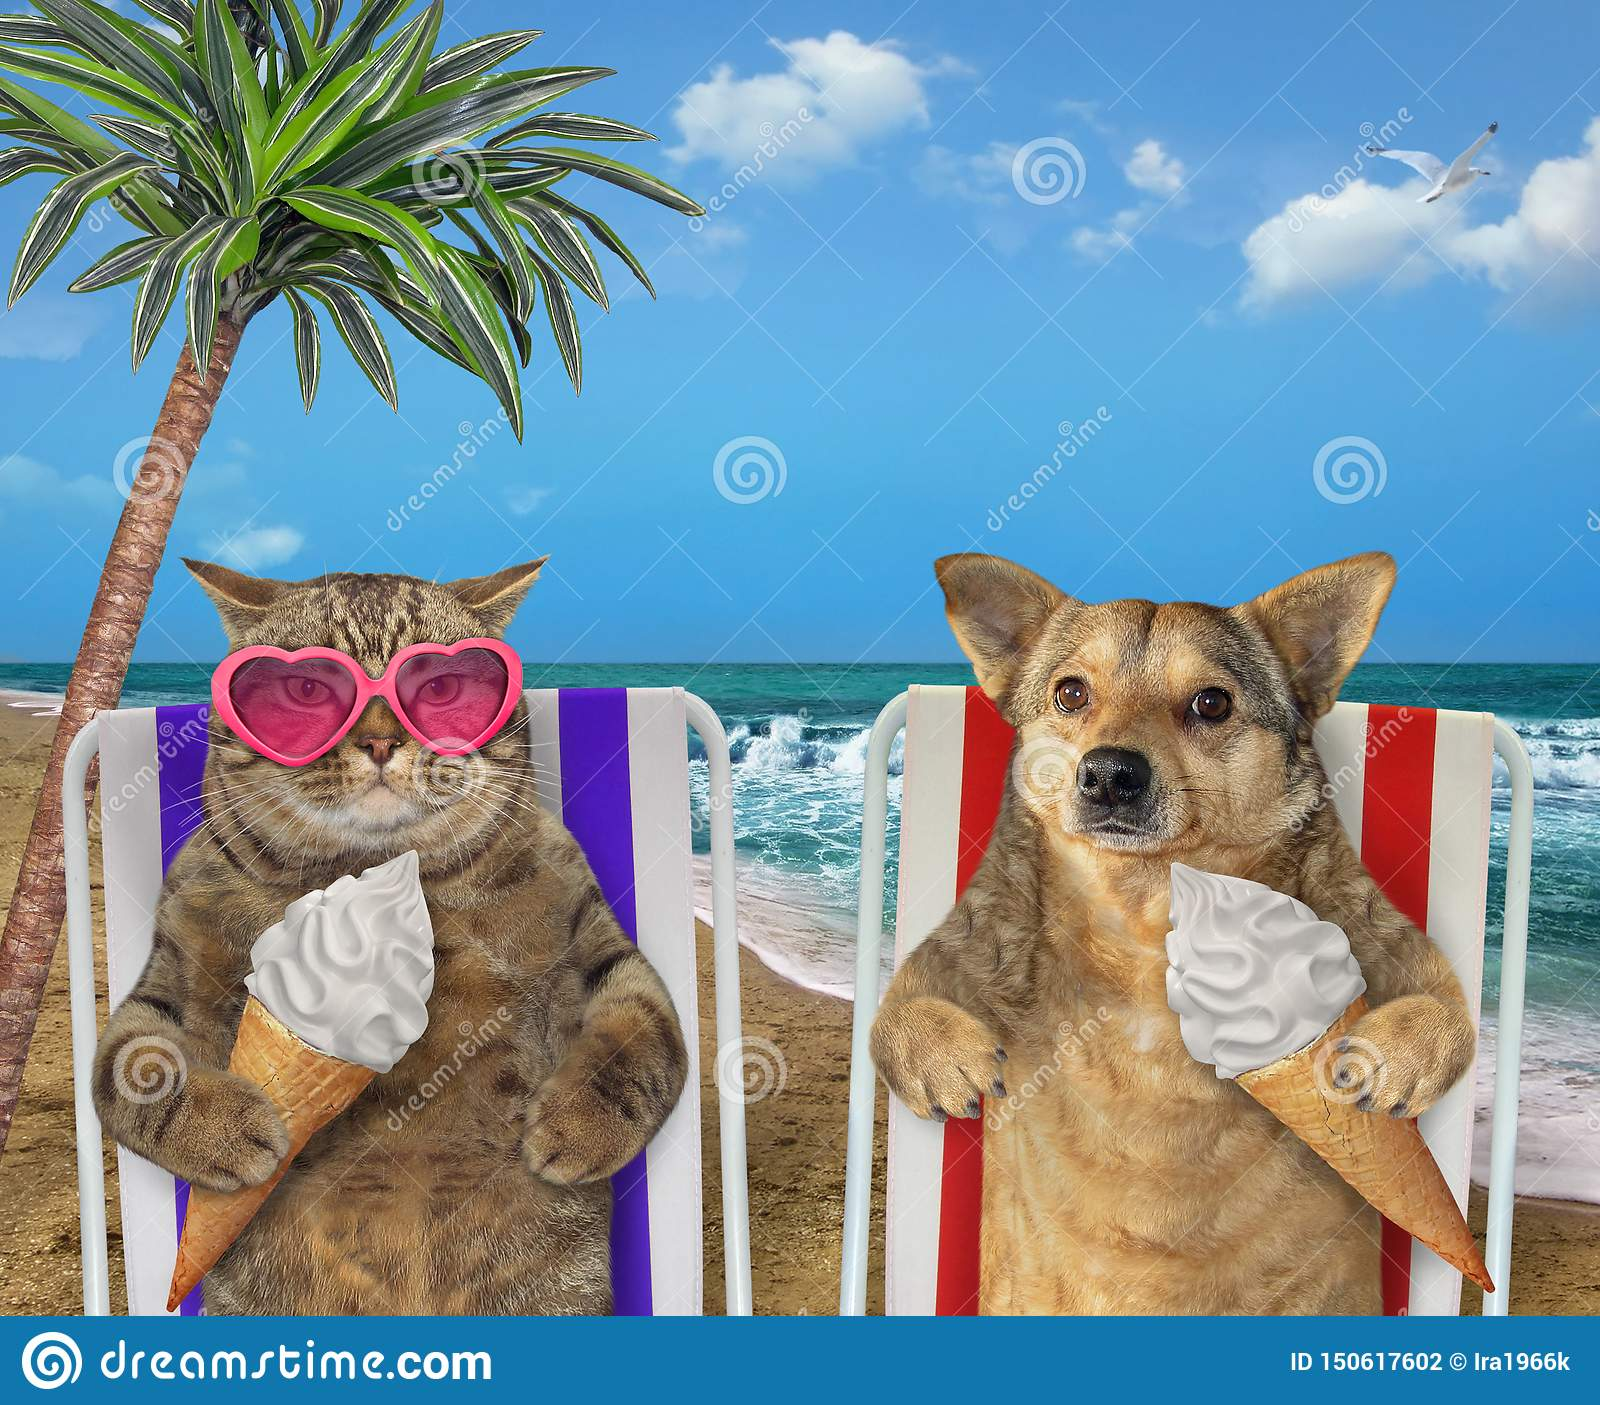 Dog and cat eating ice cream under a palm